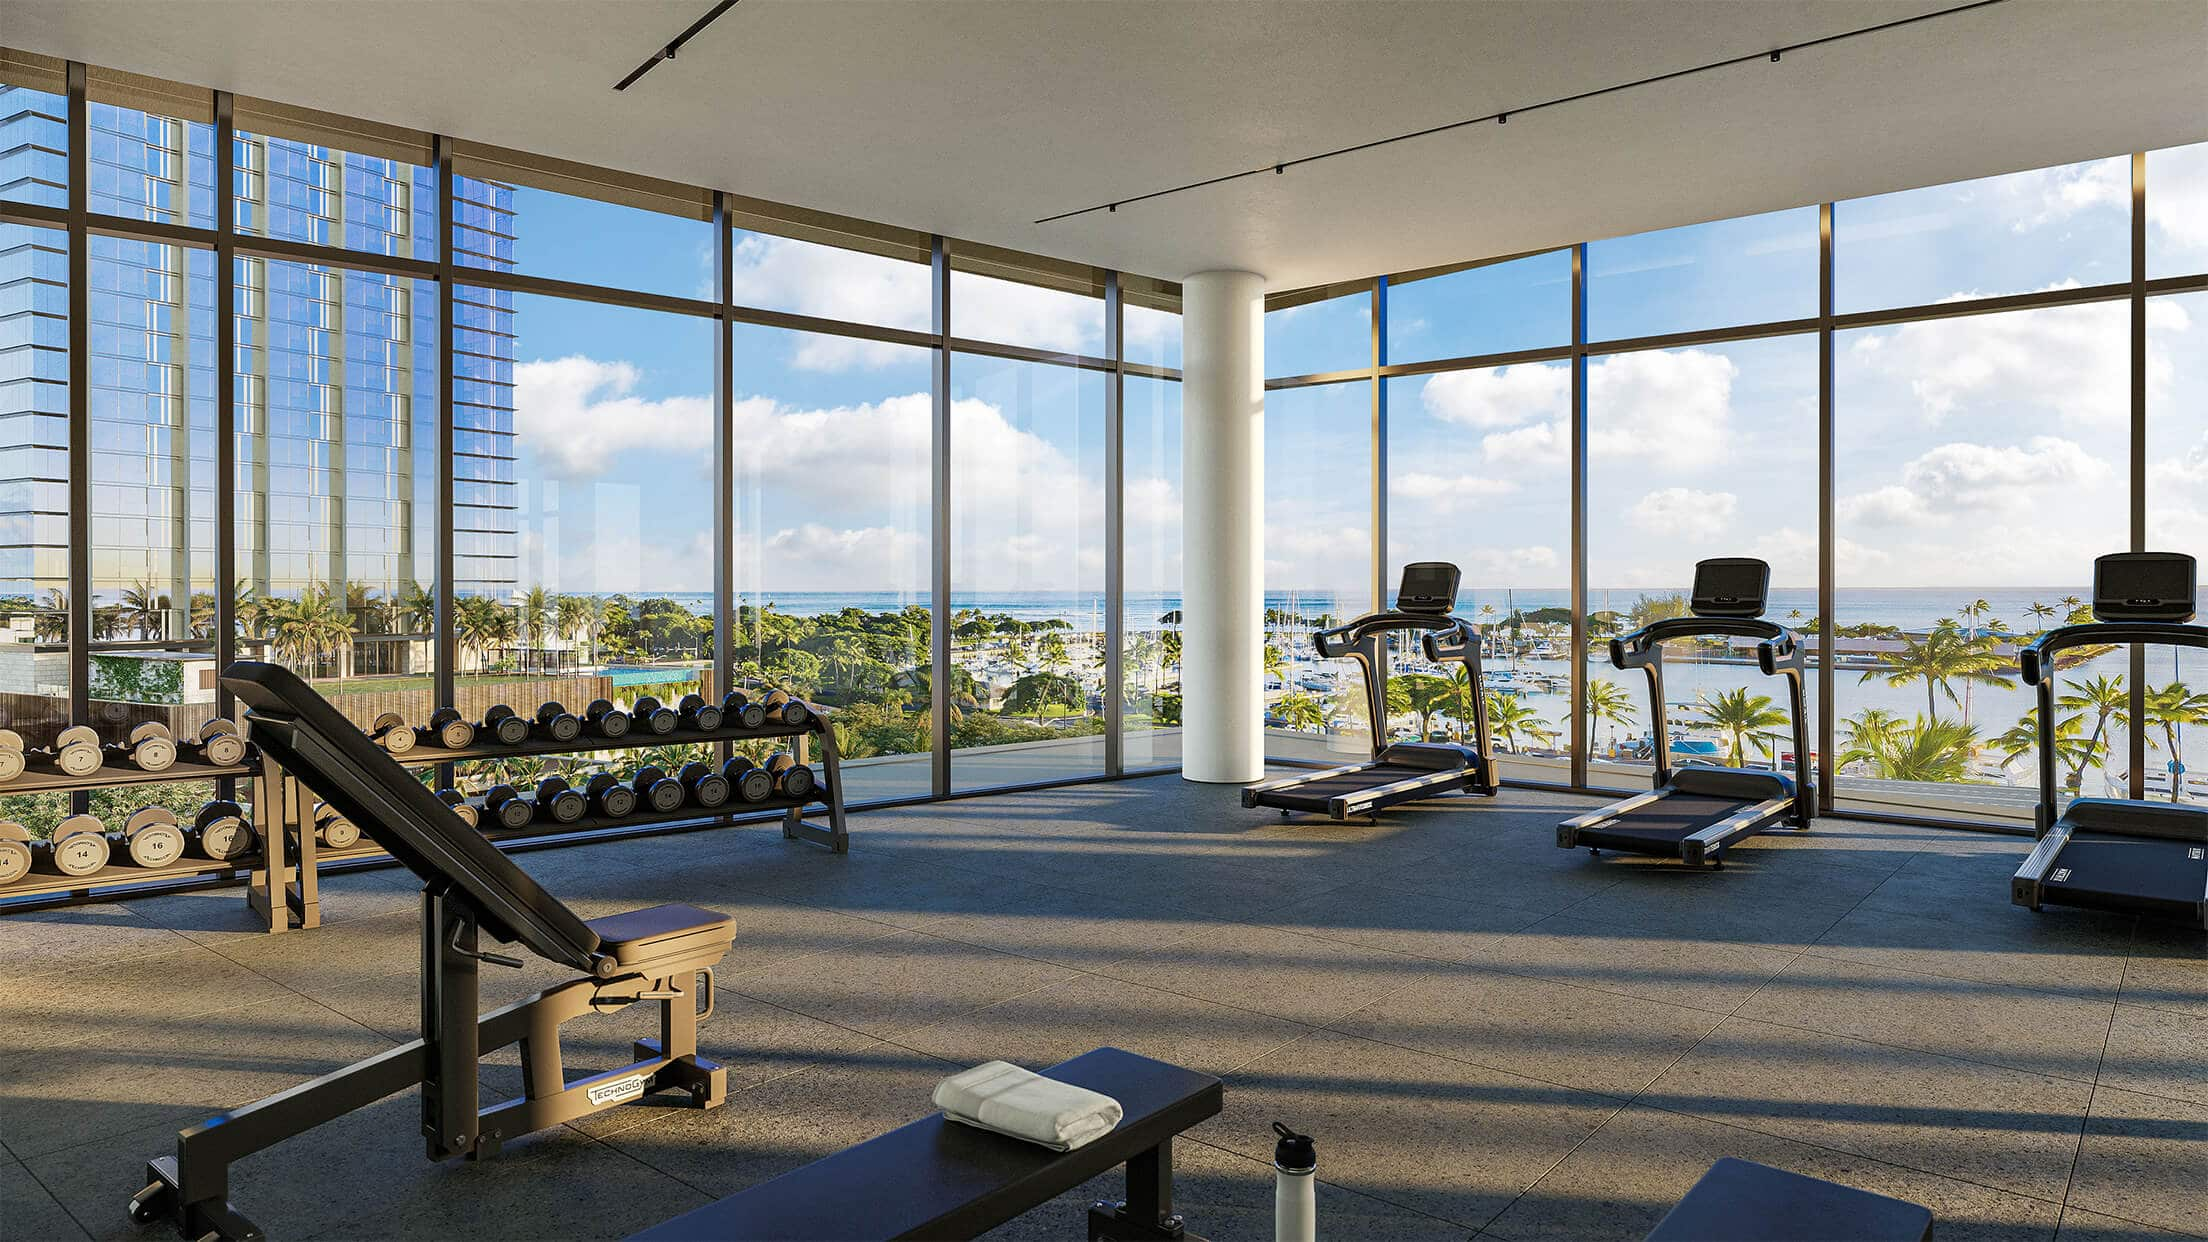 The Park on Ward Fitness Center